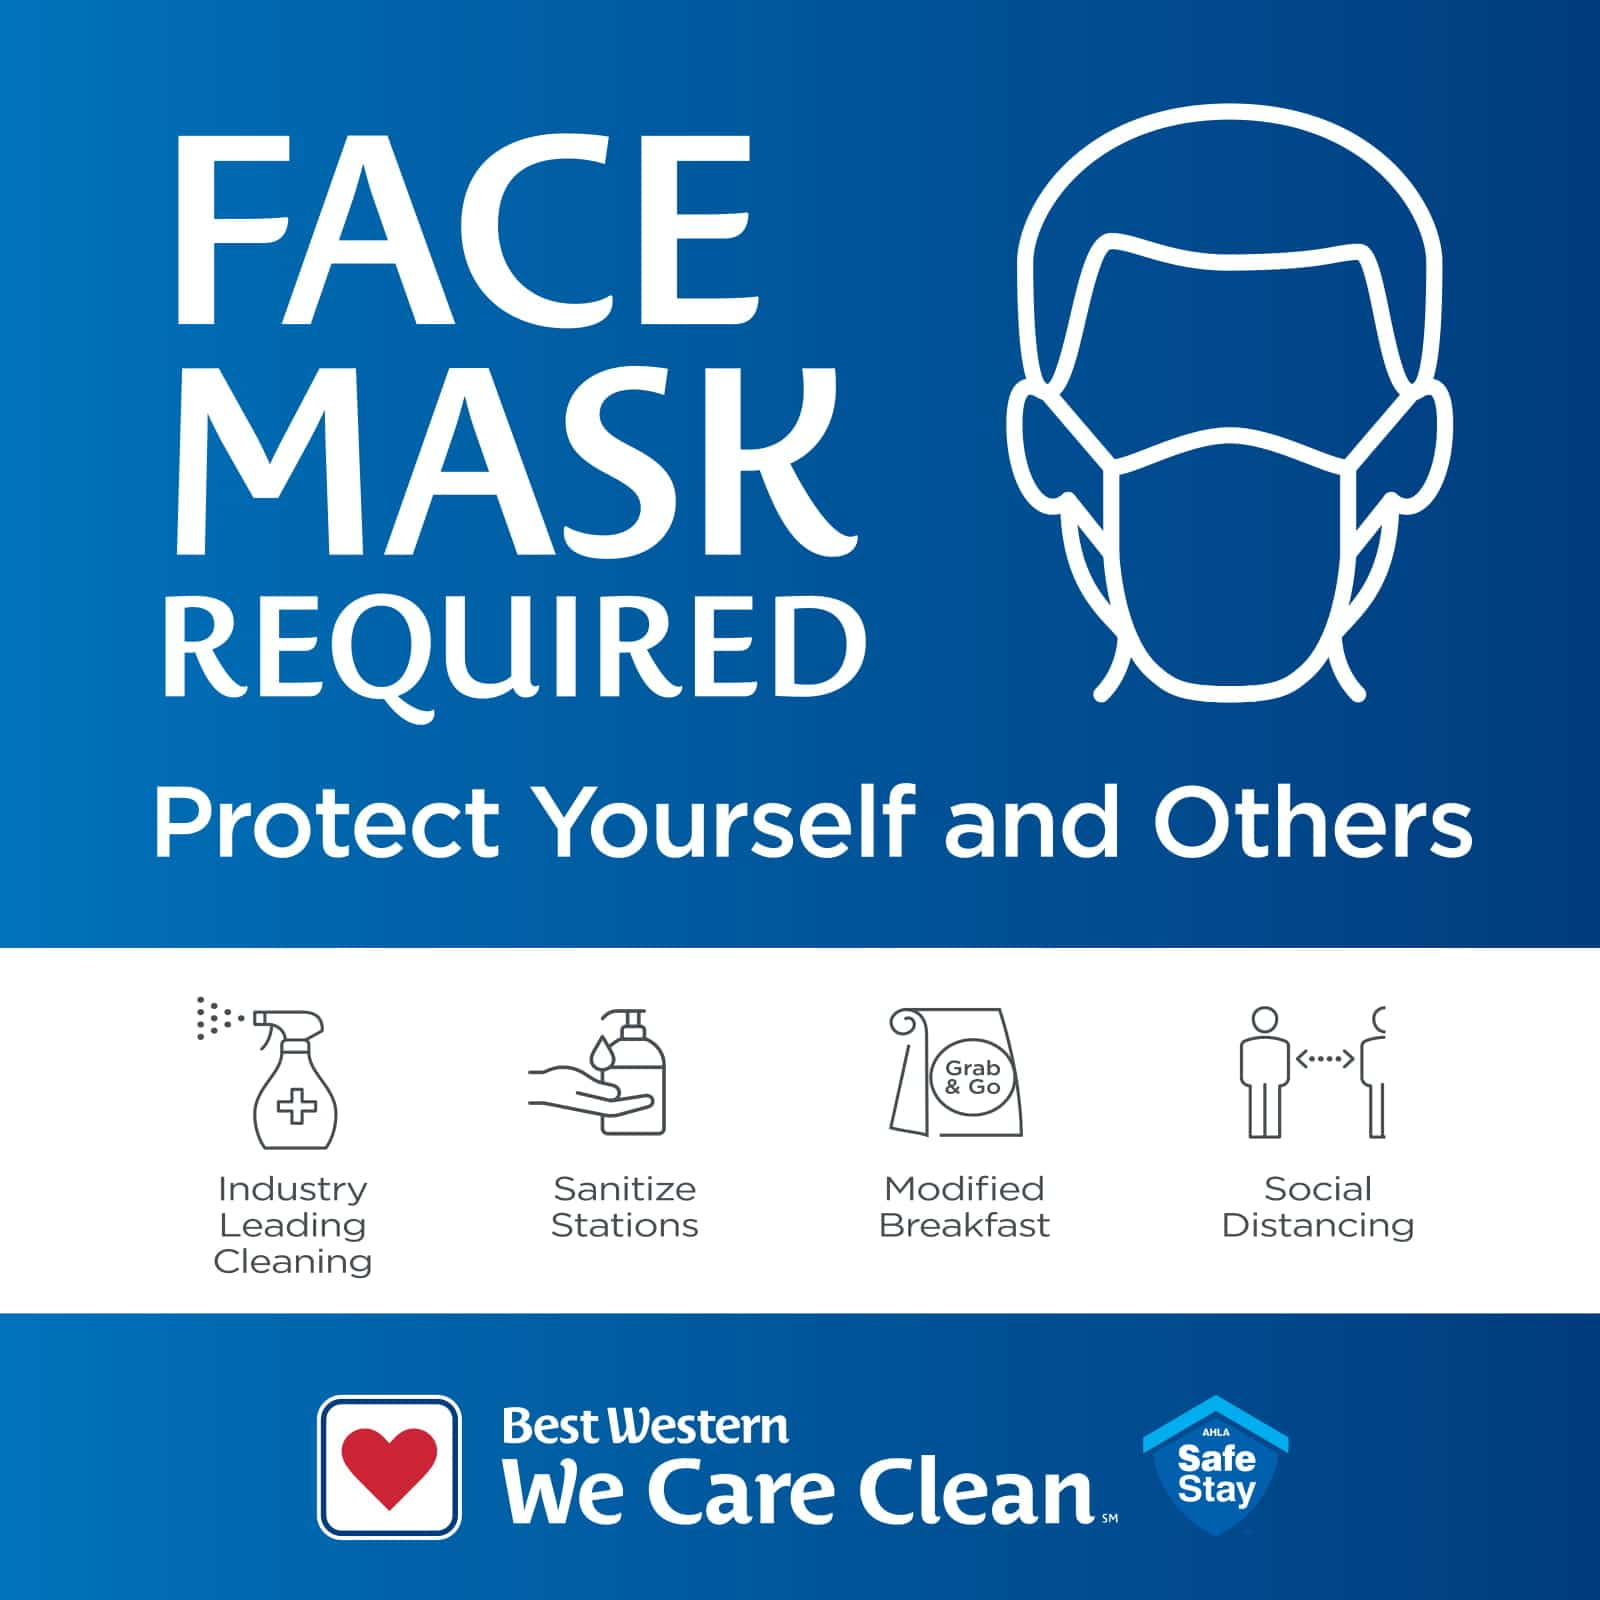 Face Mask Required. Protect Yourself and Others. Industry leading cleaning, sanitize stations, modified breakfast, social distancing. Best Western. We Care Clean. Safe stay.